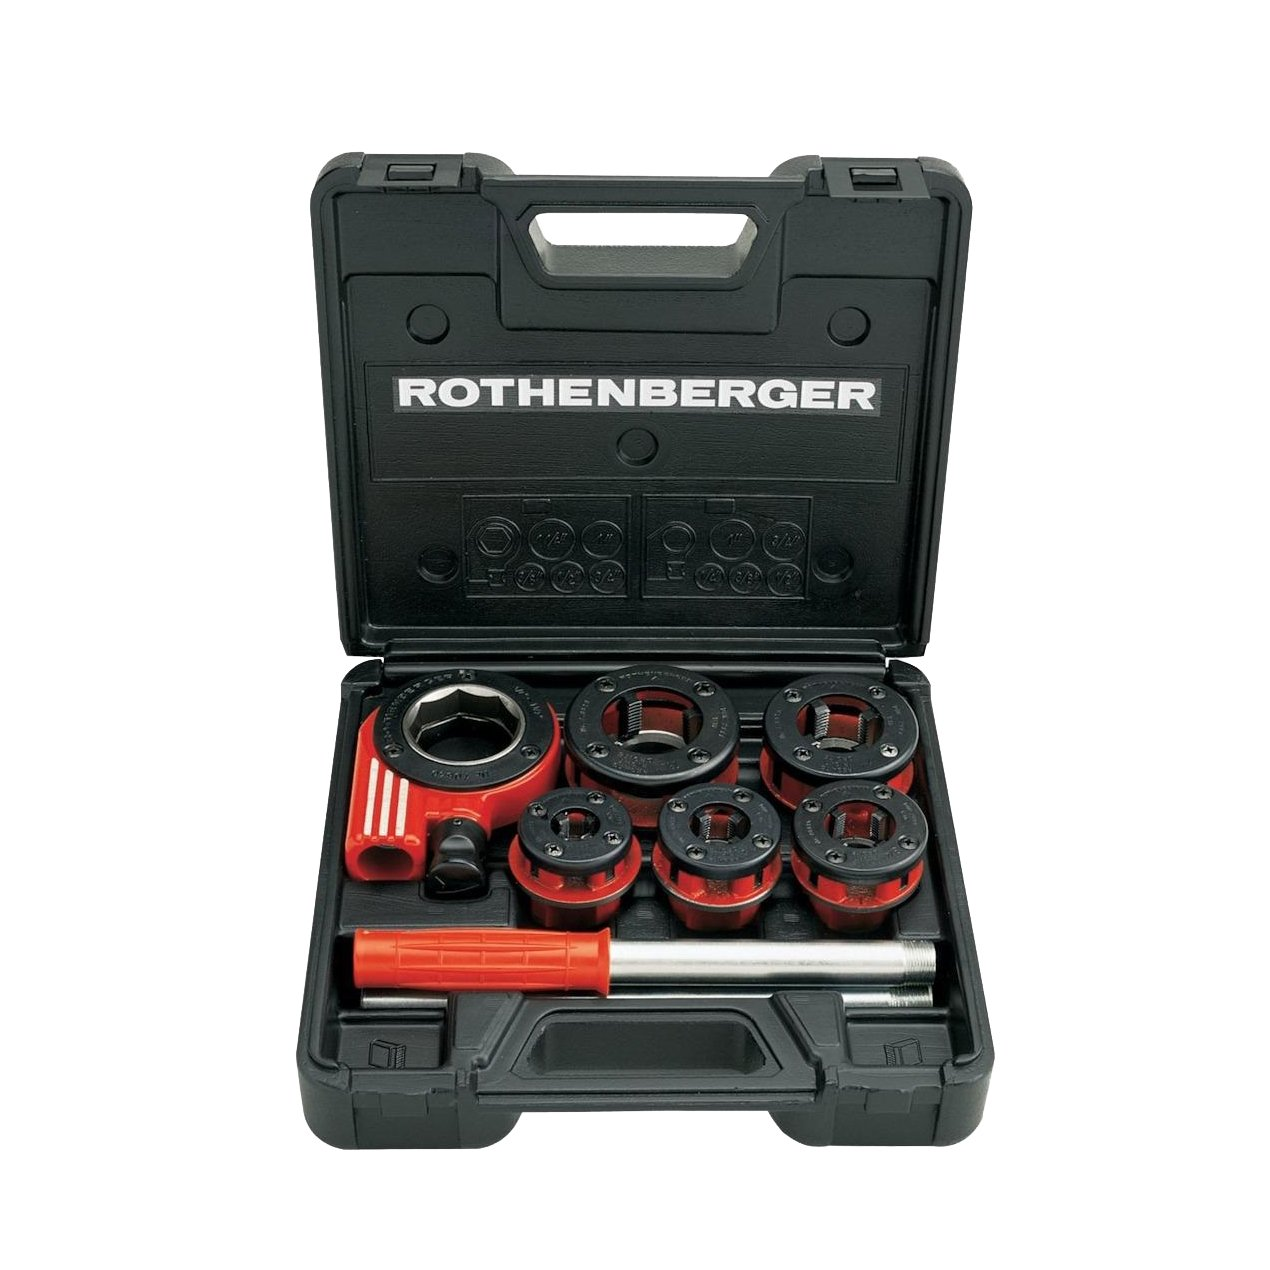 Rothenberger 070790X Super Cut Threading Dies Set including Case, BSPT R, 3/8-1.1/4